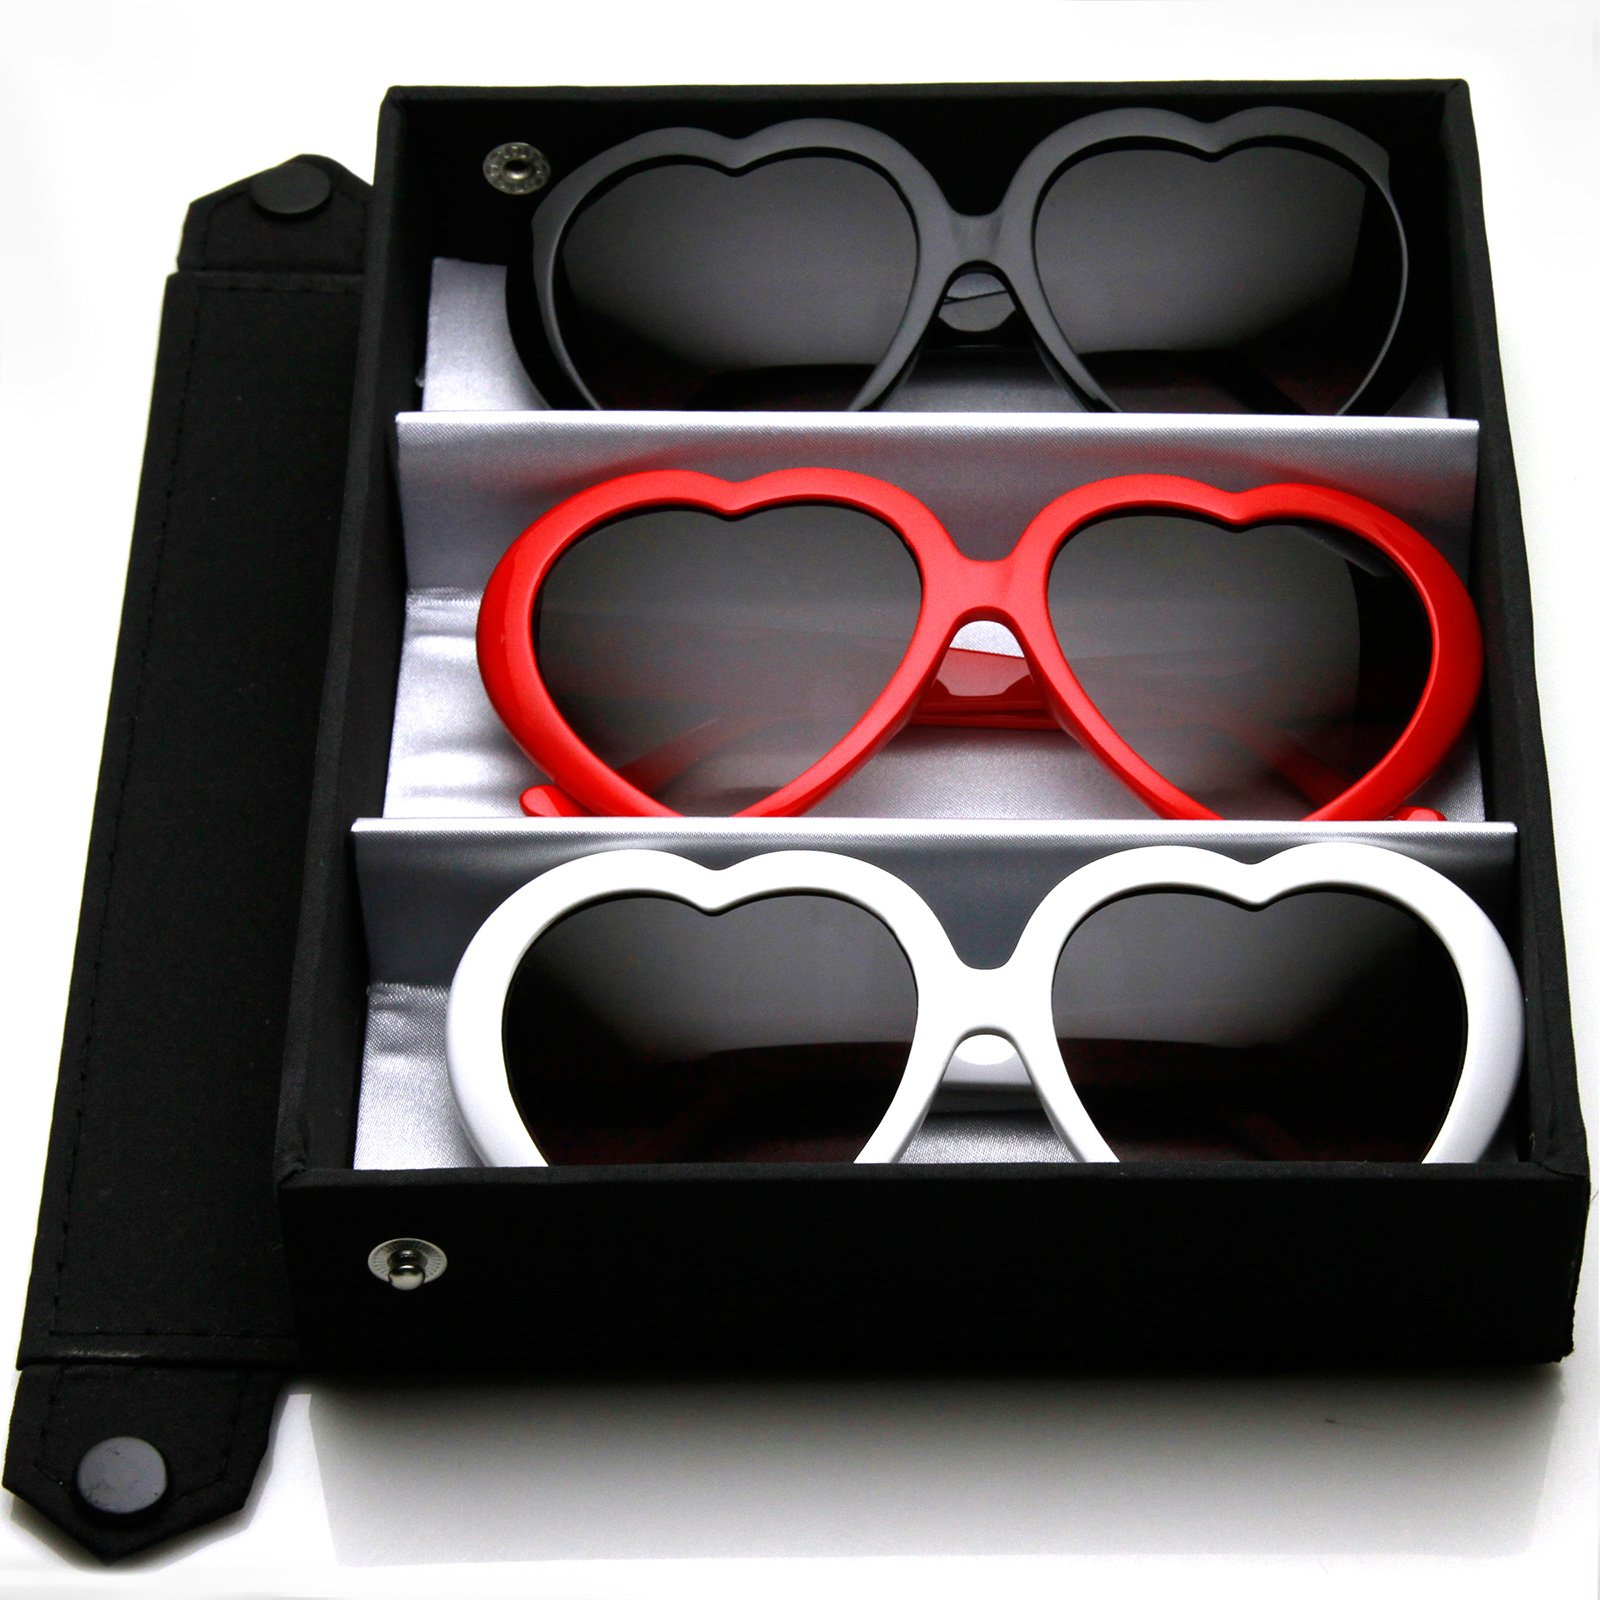 Large Oversized Womens Heart Shaped Sunglasses Cute Love Fashion Eyewear (Deluxe 3-Pack (Black/Red/White))